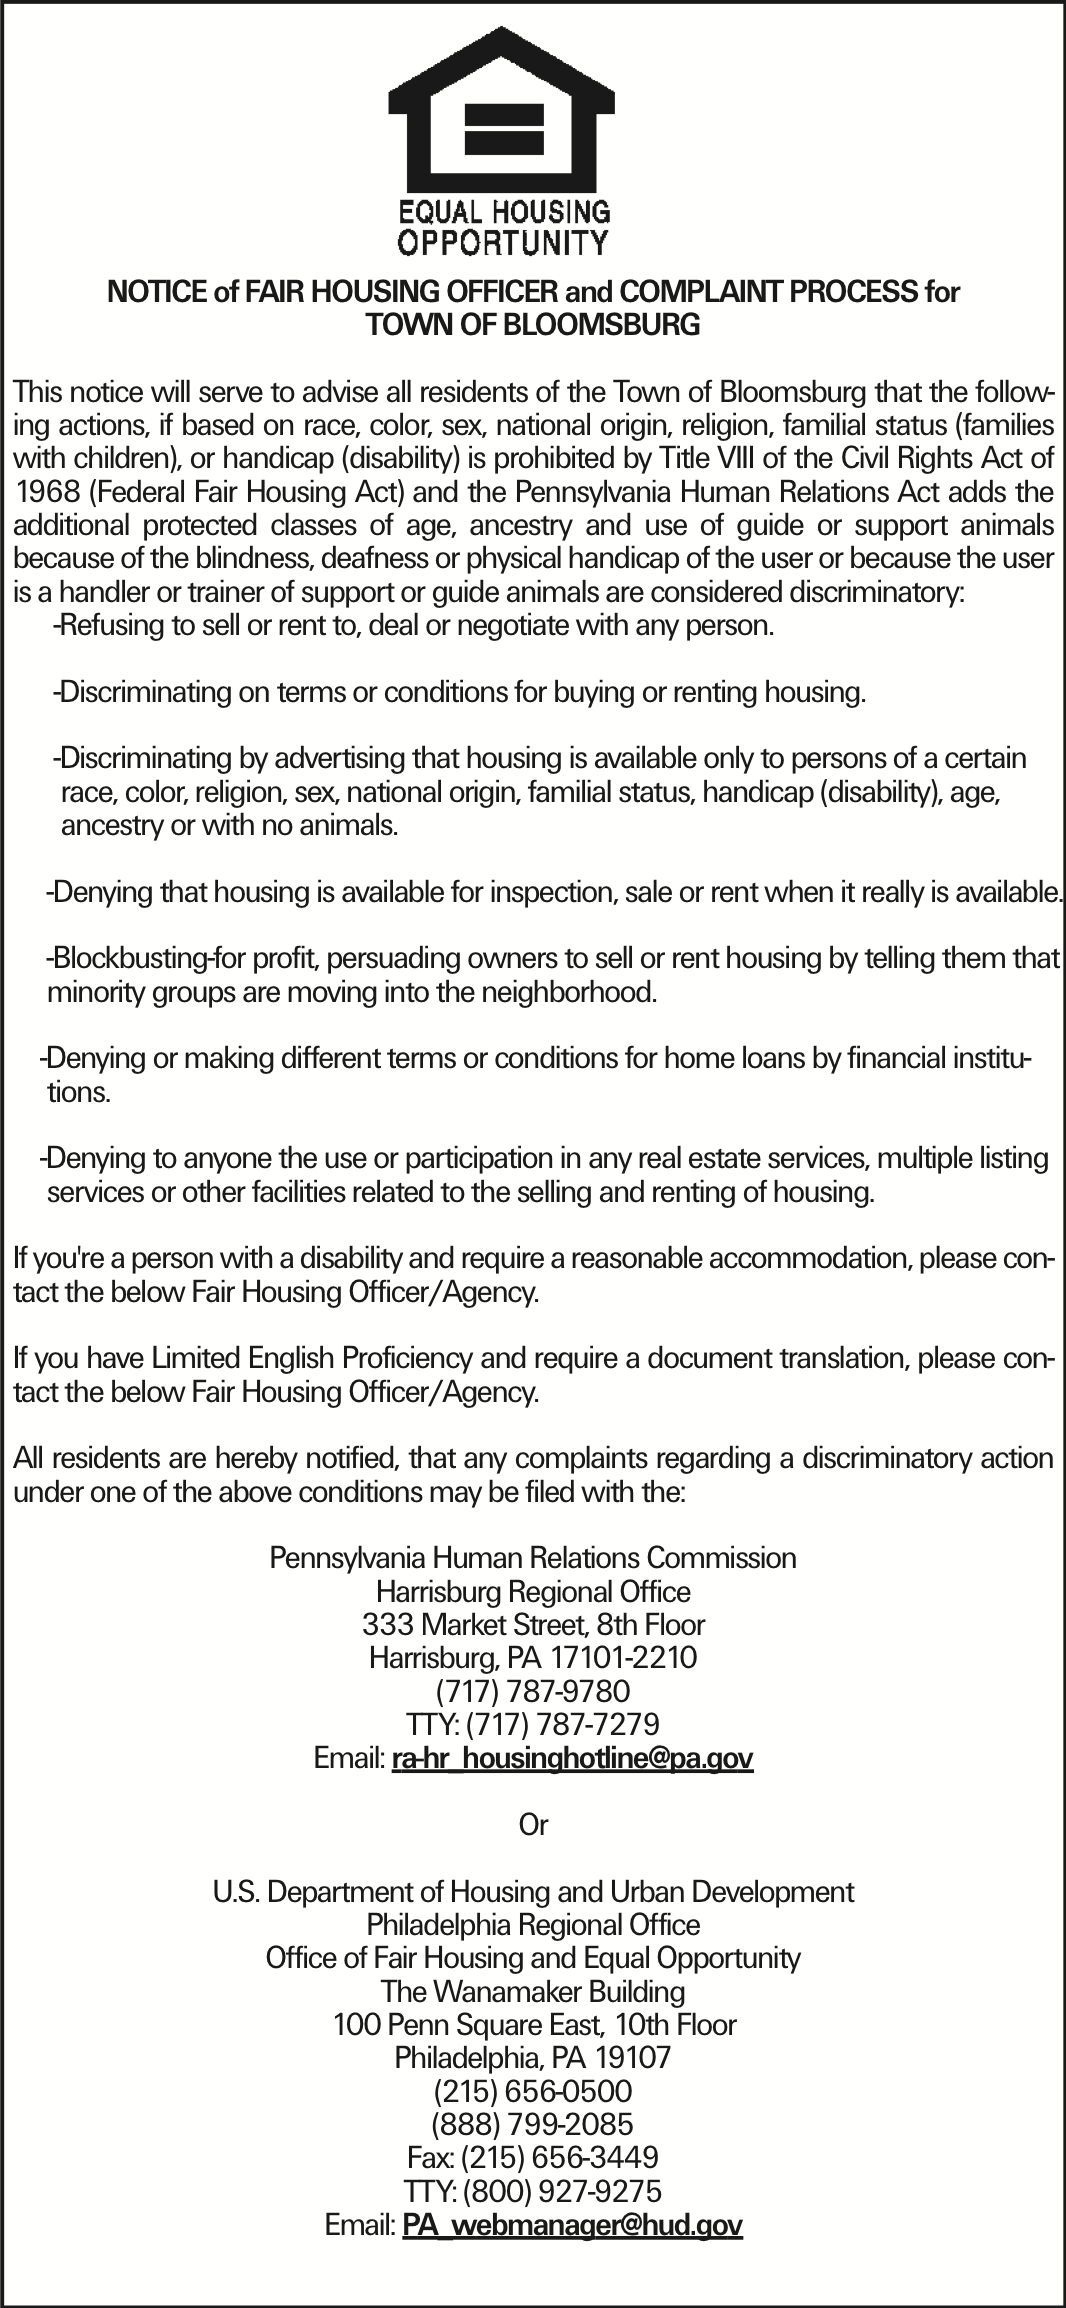 NOTICE of FAIR HOUSING OFFICER and COMPLAINT PROCESS for TOWN OF BLOOMSBURG This notice will serve to advise all residents of the Town of Bloomsburg that the following actions, if based on race, color, sex, national origin, religion, familial status (families with children), or handicap (disability) is prohibited by Title VIII of the Civil Rights Act of 1968 (Federal Fair Housing Act) and the Pennsylvania Human Relations Act adds the additional protected classes of age, ancestry and use of guide or support animals because of the blindness, deafness or physical handicap of the user or because the user is a handler or trainer of support or guide animals are considered discriminatory: -Refusing to sell or rent to, deal or negotiate with any person. -Discriminating on terms or conditions for buying or renting housing. -Discriminating by advertising that housing is available only to persons of a certain race, color, religion, sex, national origin, familial status, handicap (disability), age, ancestry or with no animals. -Denying that housing is available for inspection, sale or rent when it really is available. -Blockbusting-for profit, persuading owners to sell or rent housing by telling them that minority groups are moving into the neighborhood. -Denying or making different terms or conditions for home loans by financial institu- tions. -Denying to anyone the use or participation in any real estate services, multiple listing services or other facilities related to the selling and renting of housing. If you're a person with a disability and require a reasonable accommodation, please contact the below Fair Housing Officer/Agency. If you have Limited English Proficiency and require a document translation, please contact the below Fair Housing Officer/Agency. All residents are hereby notified, that any complaints regarding a discriminatory action under one of the above conditions may be filed with the: Pennsylvania Human Relations Commission Harrisburg Regional Office 333 